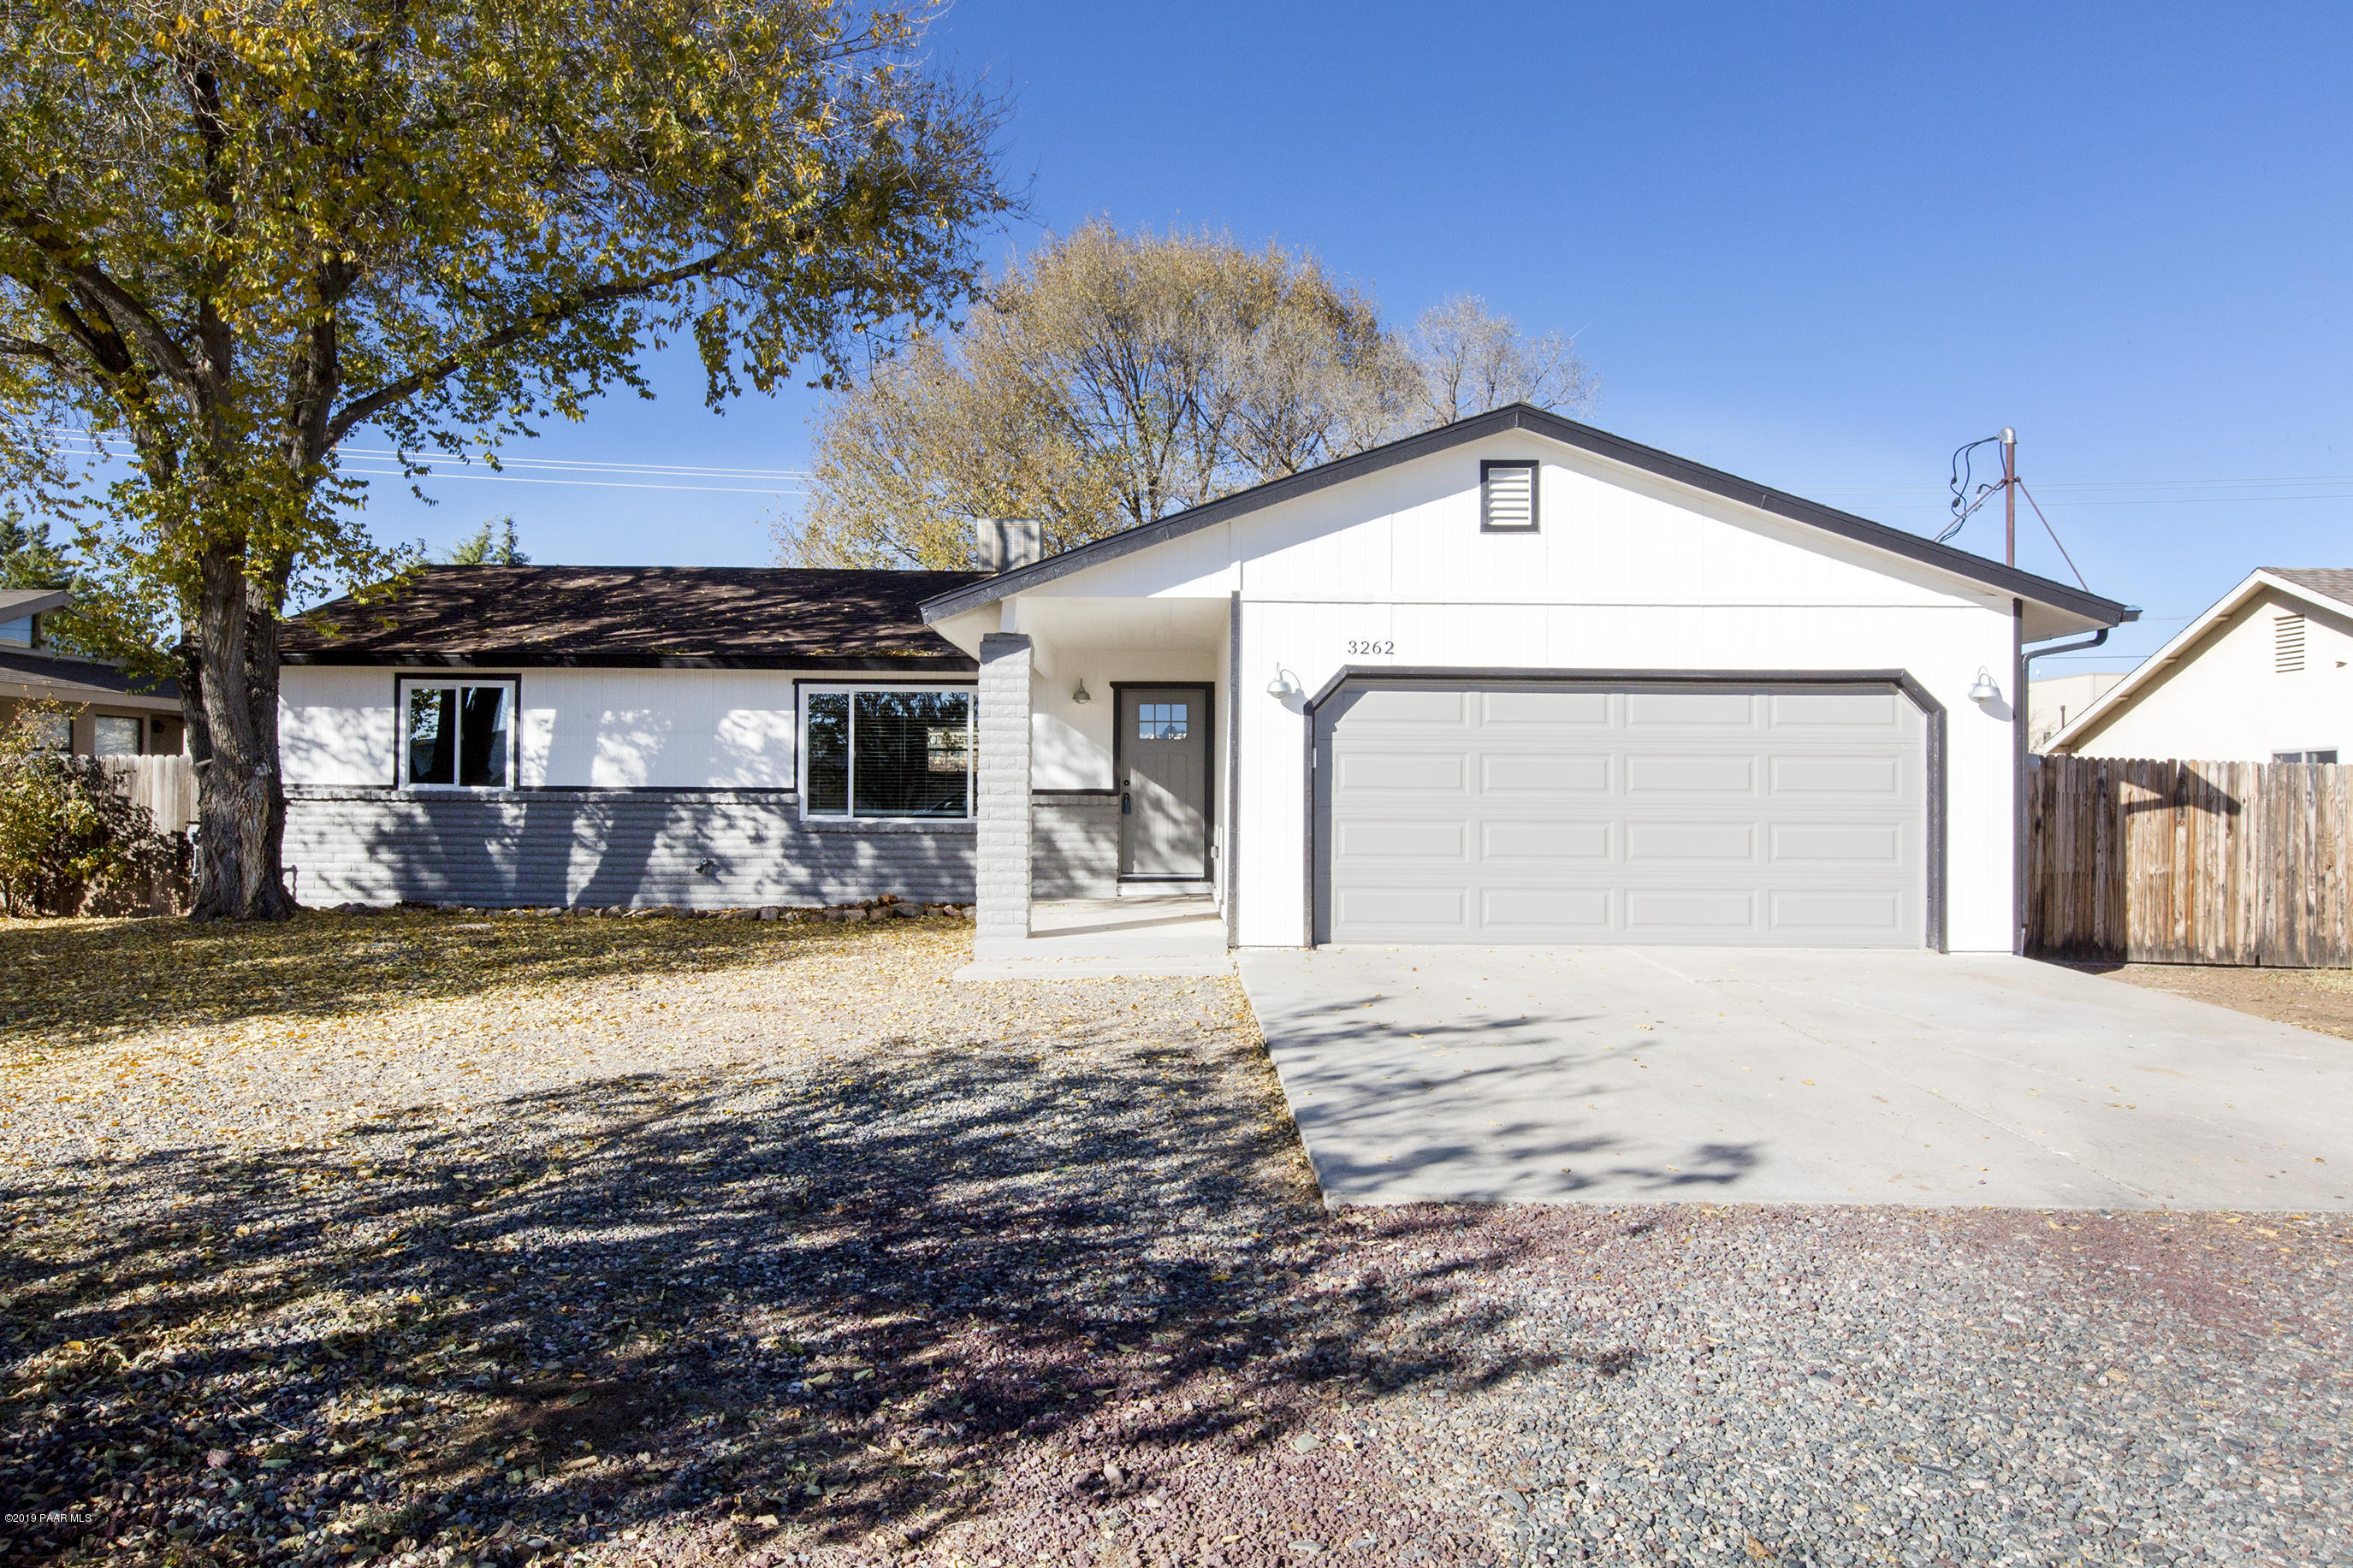 3262 N Victor Road, Prescott Valley, Arizona